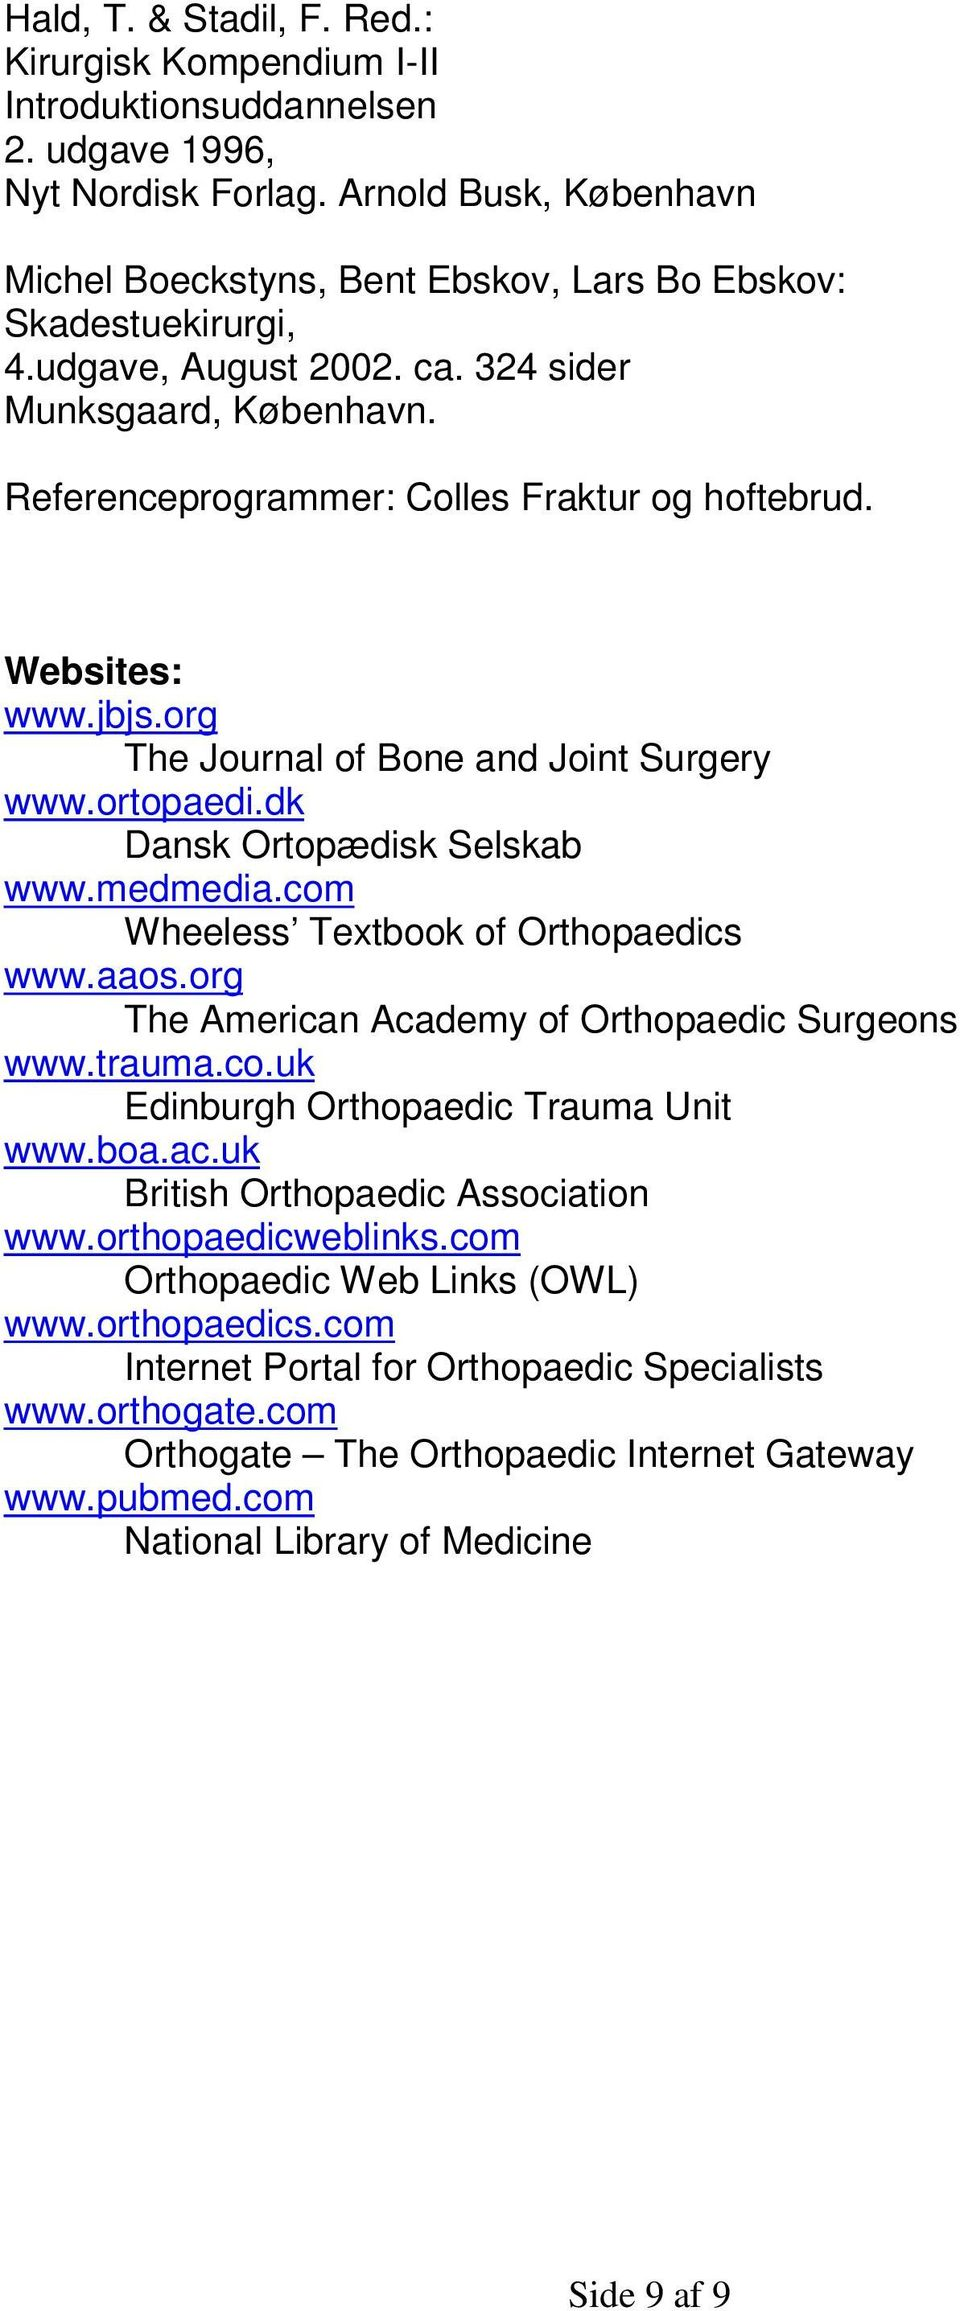 Websites: www.jbjs.org The Journal of Bone and Joint Surgery www.ortopaedi.dk Dansk Ortopædisk Selskab www.medmedia.com Wheeless Textbook of Orthopaedics www.aaos.